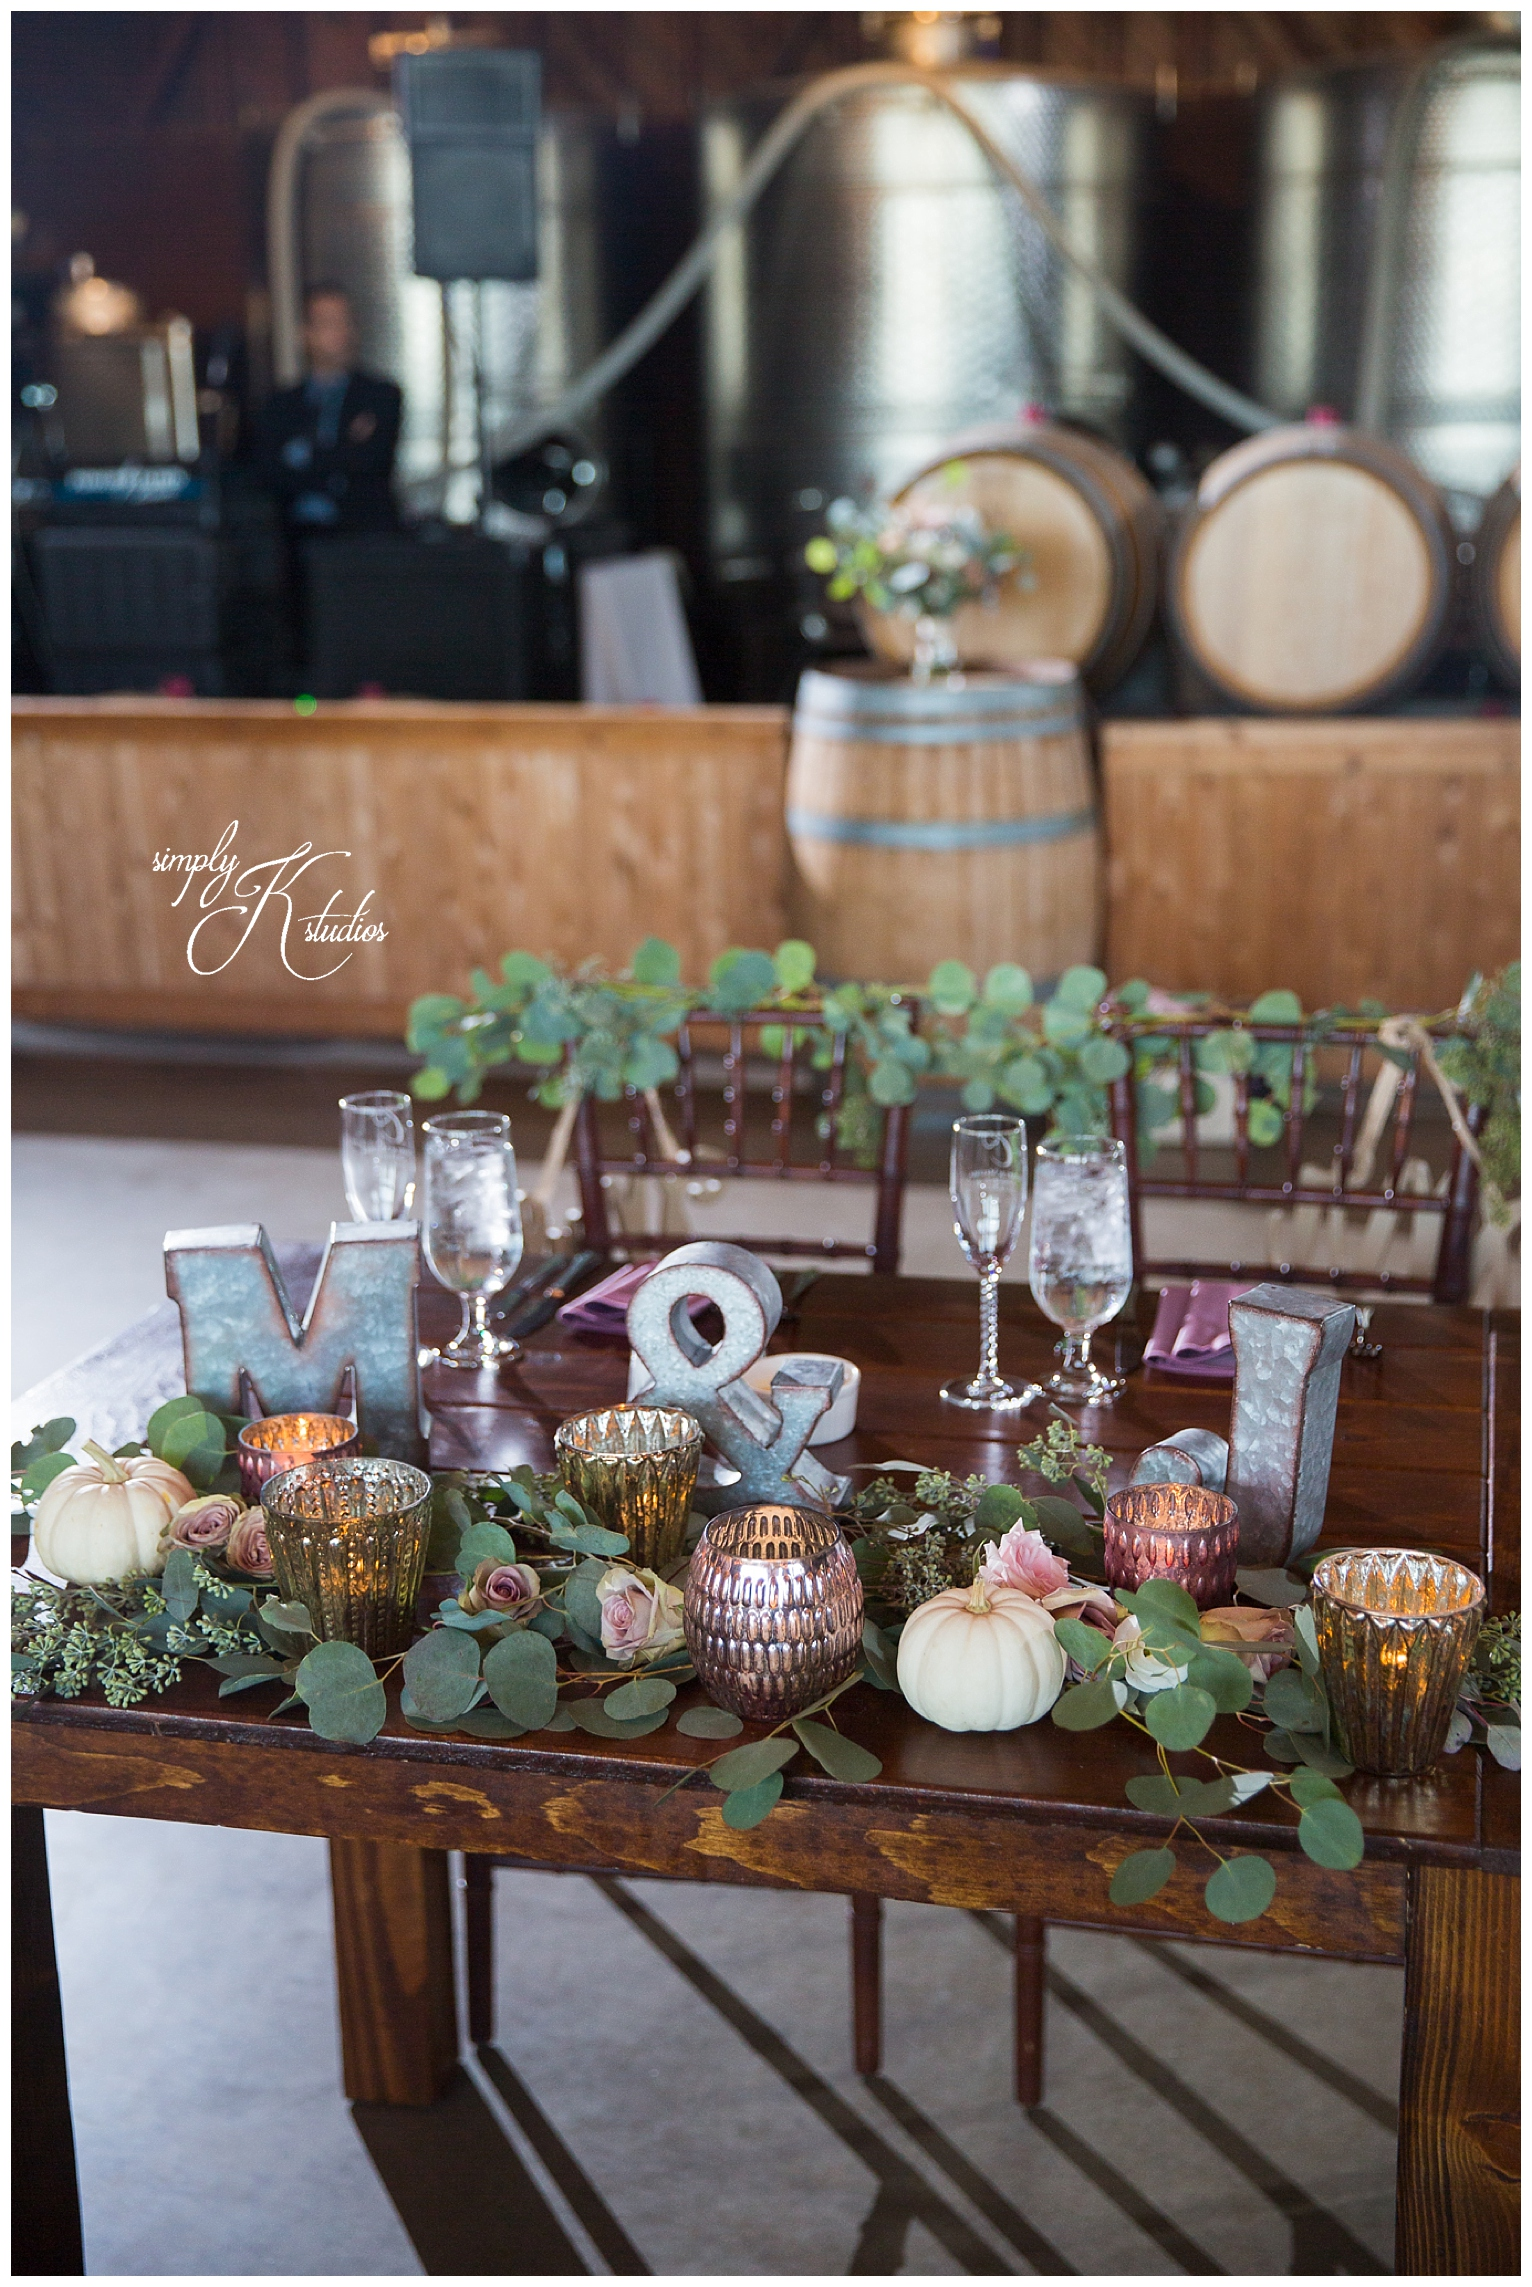 95 Sweetheart Table at Saltwater Farm Vineyard.jpg